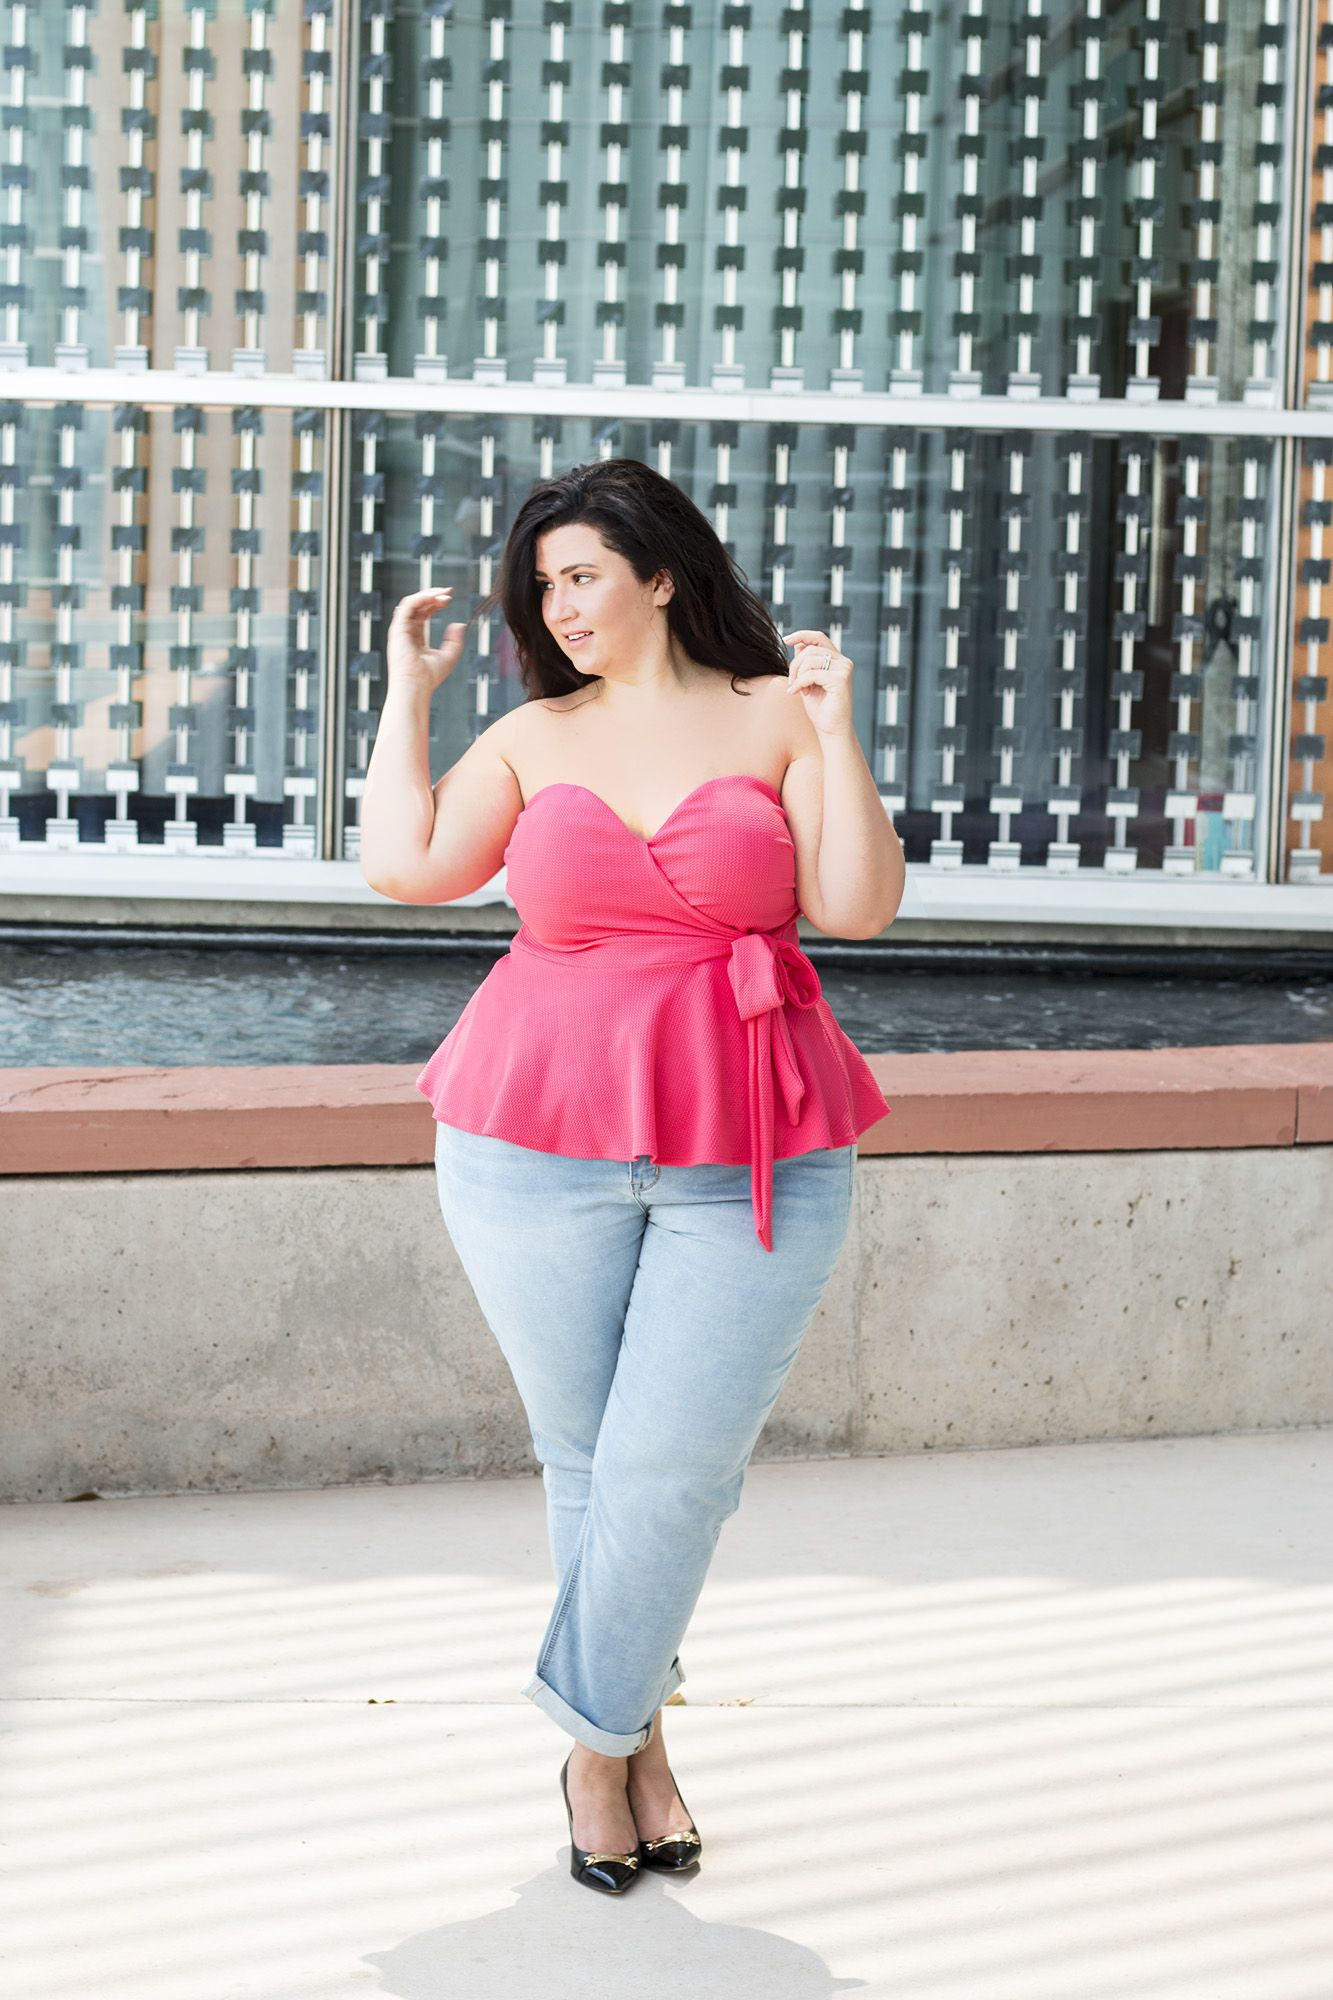 a28dd8d869fb gwynnie bee plus size ootd sometimes glam crystal coons fashion what to wear